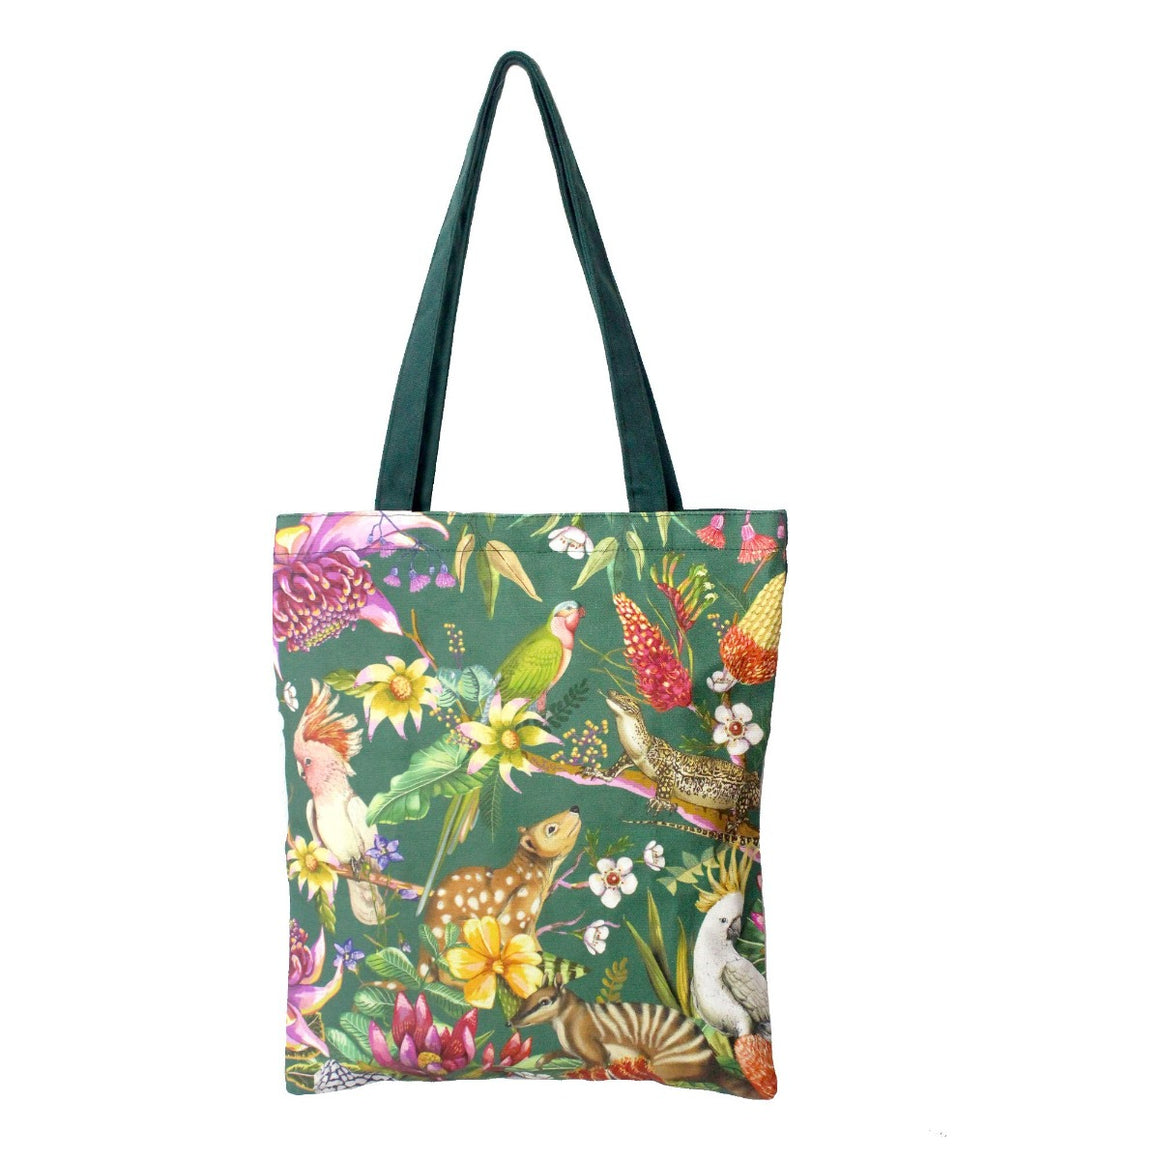 Image featuring a tote bag with a green background, australian florals and a variety of australian animals such as australian king parrot, numbat and quoll